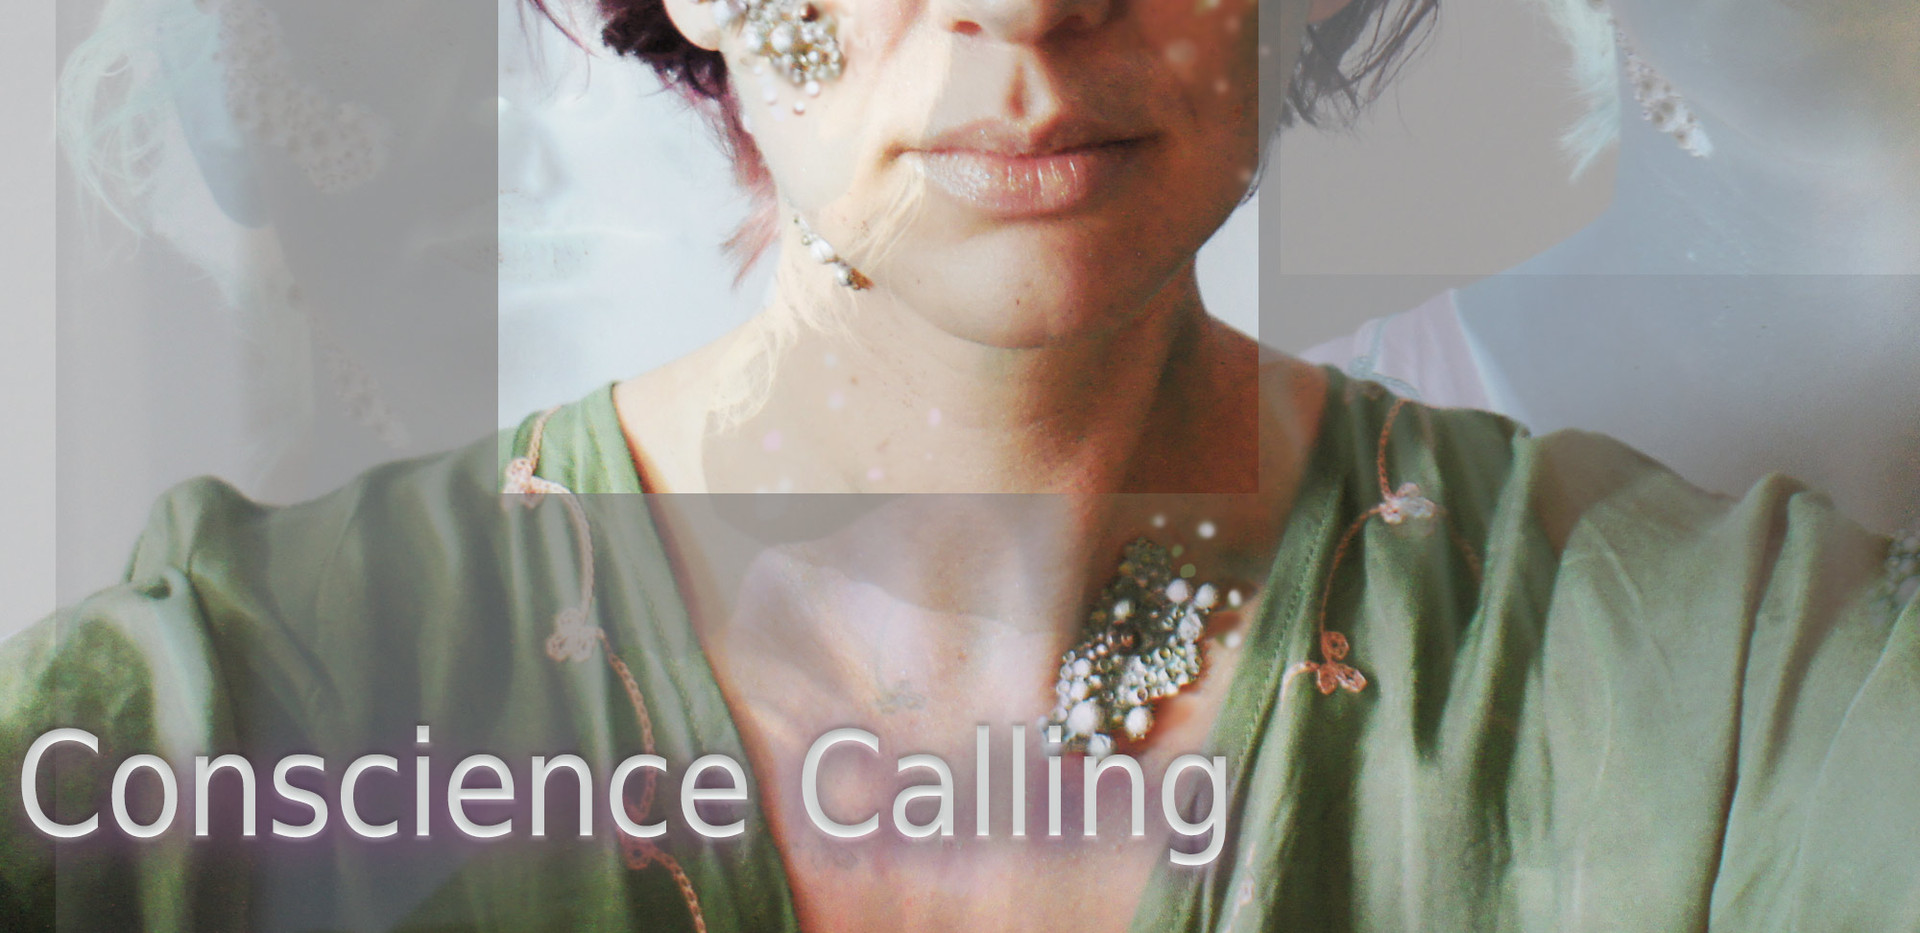 Conscience Calling